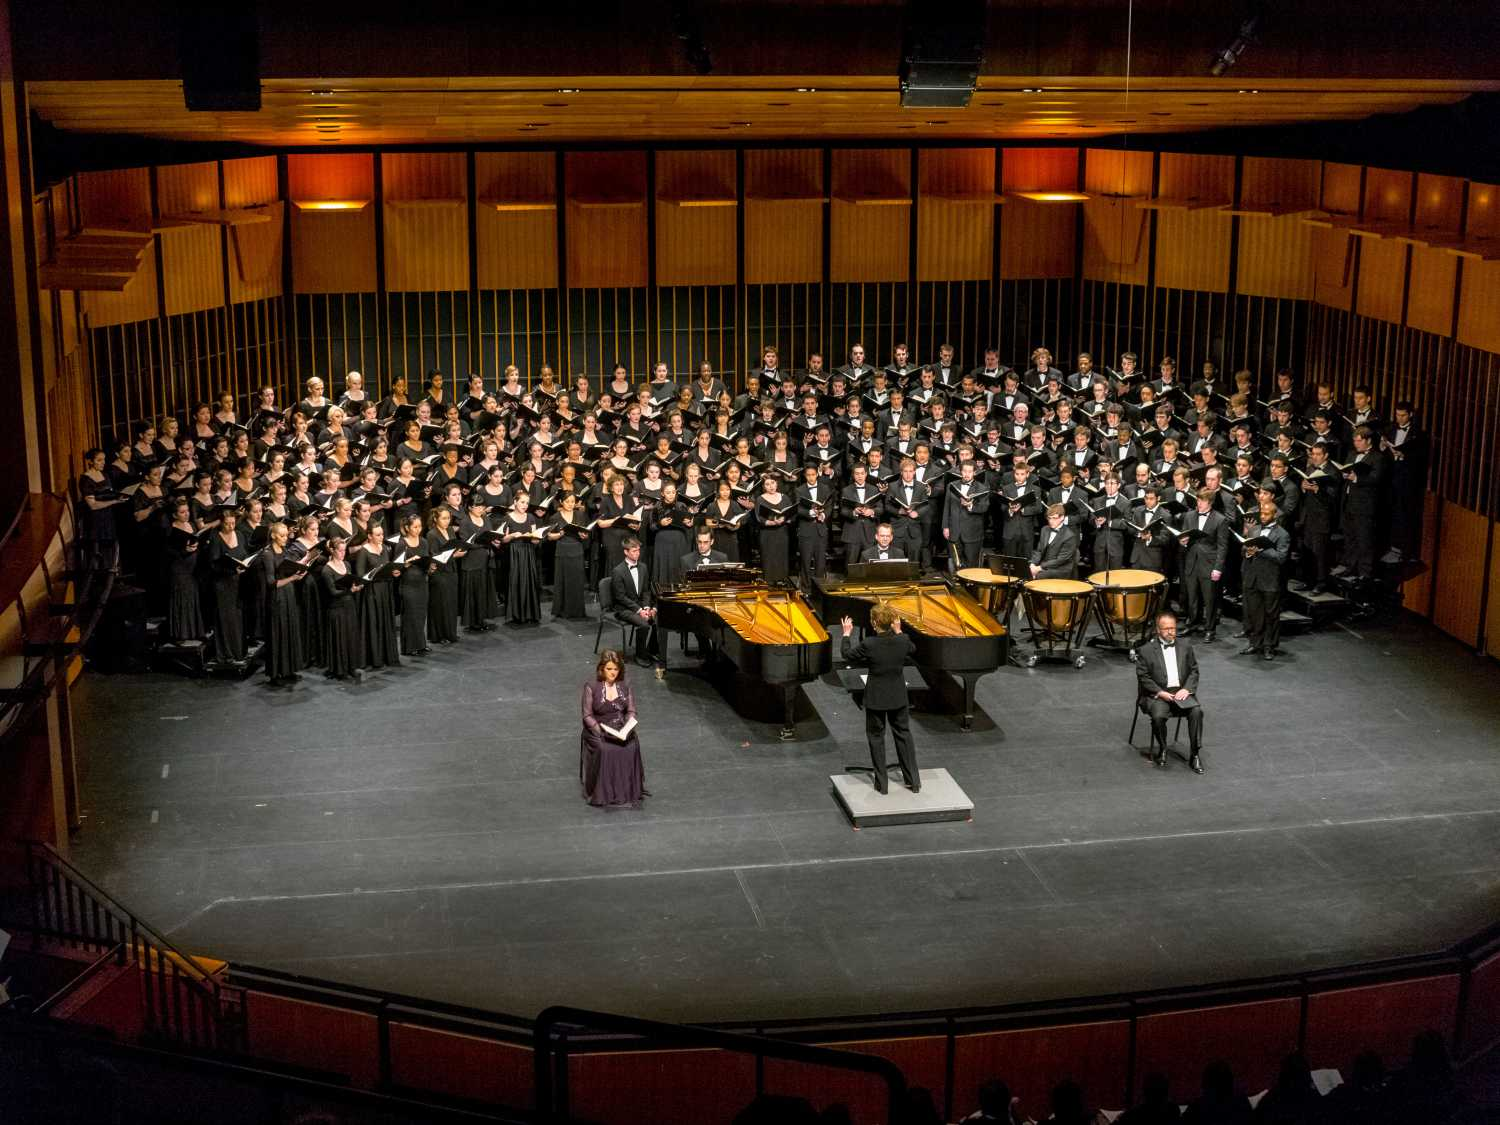 Montclair State Chorale Makes Carnegie Hall Debut - MSU News Center